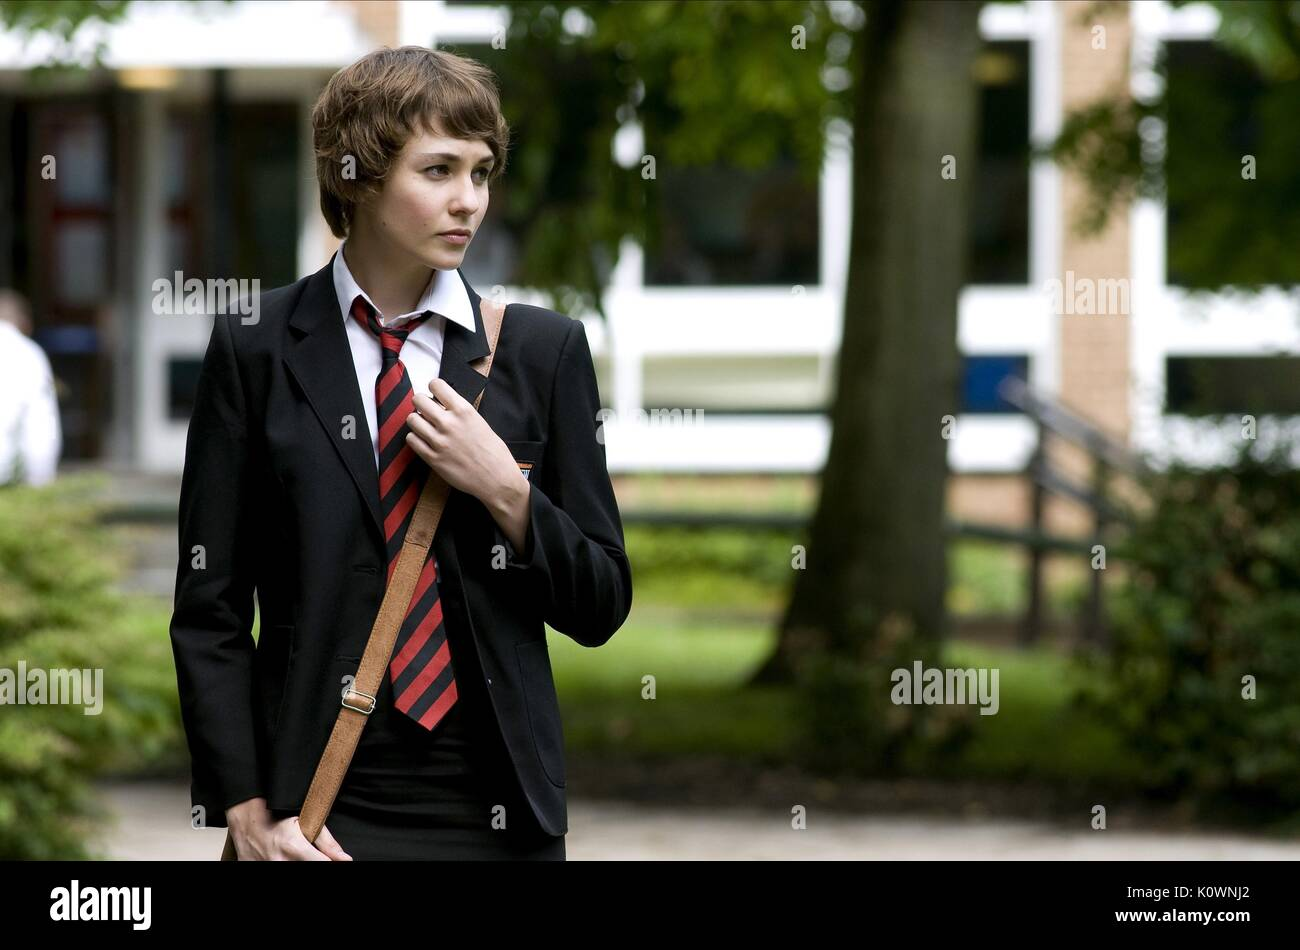 TUPPENCE MIDDLETON TORMENTED (2009) - Stock Image